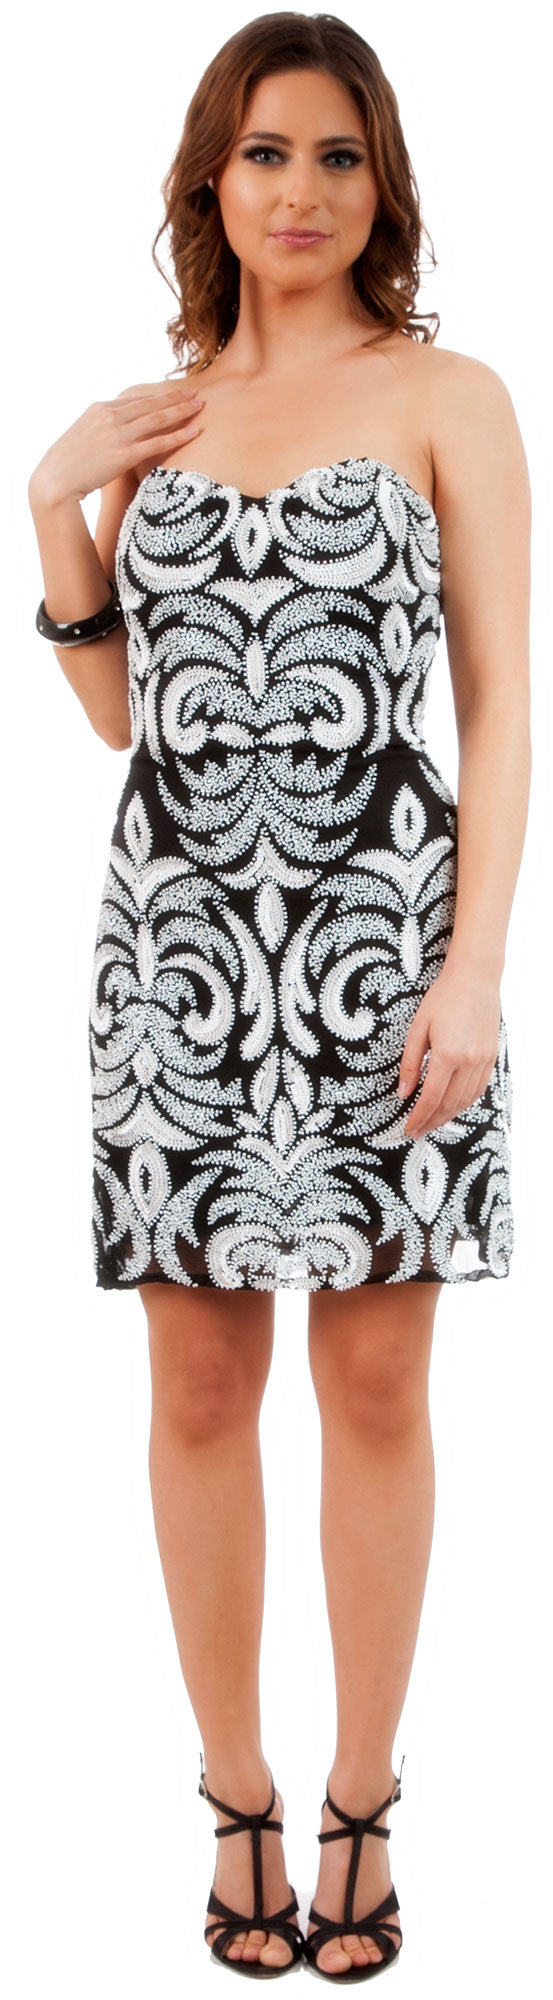 Main image of Short Fitted Beaded Short Shift Party Dress